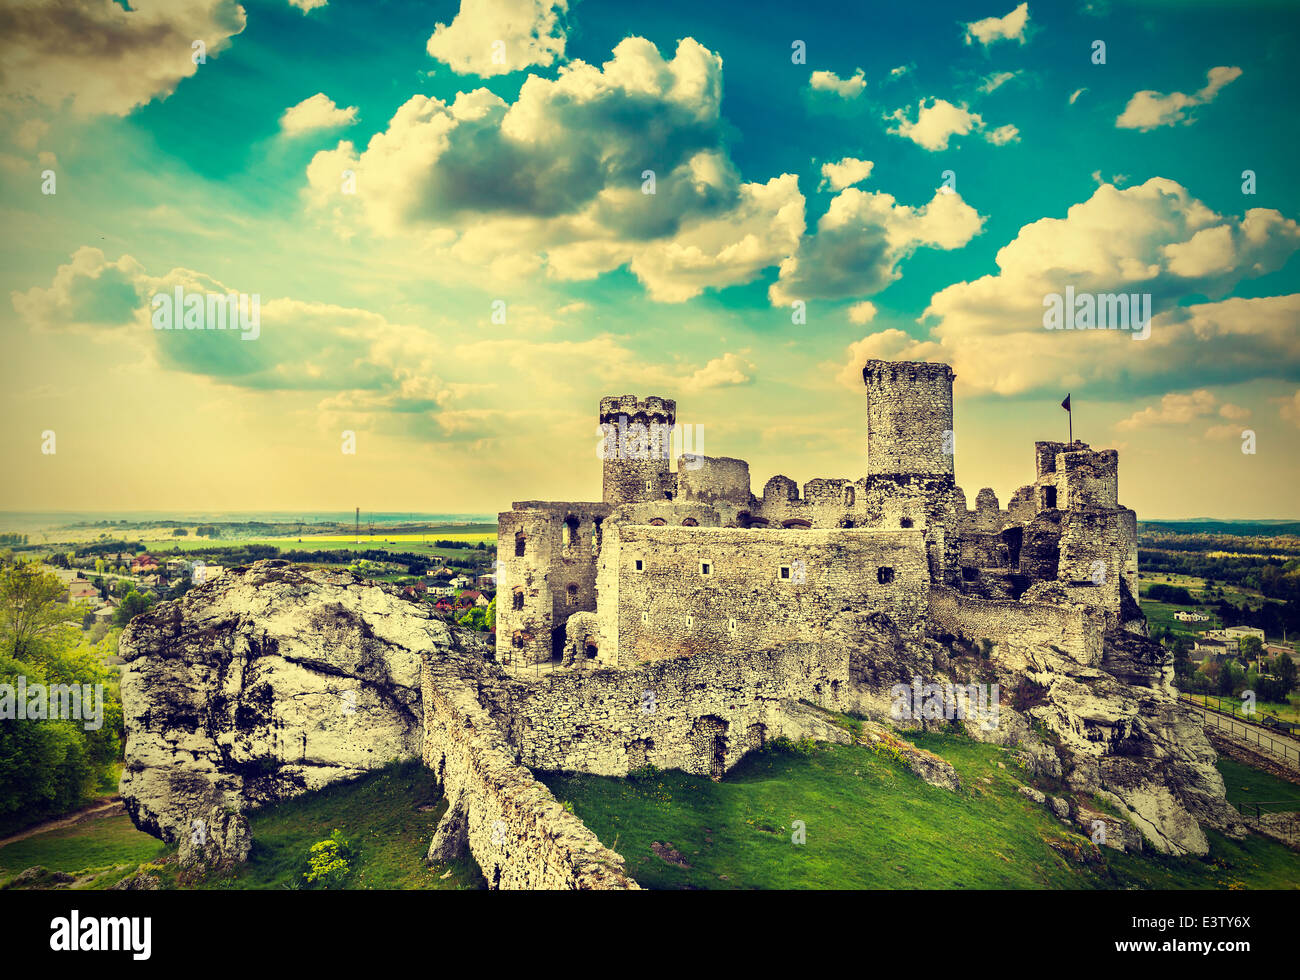 Ruins of a castle, Ogrodzieniec fortifications, Poland, vintage retro filter. - Stock Image